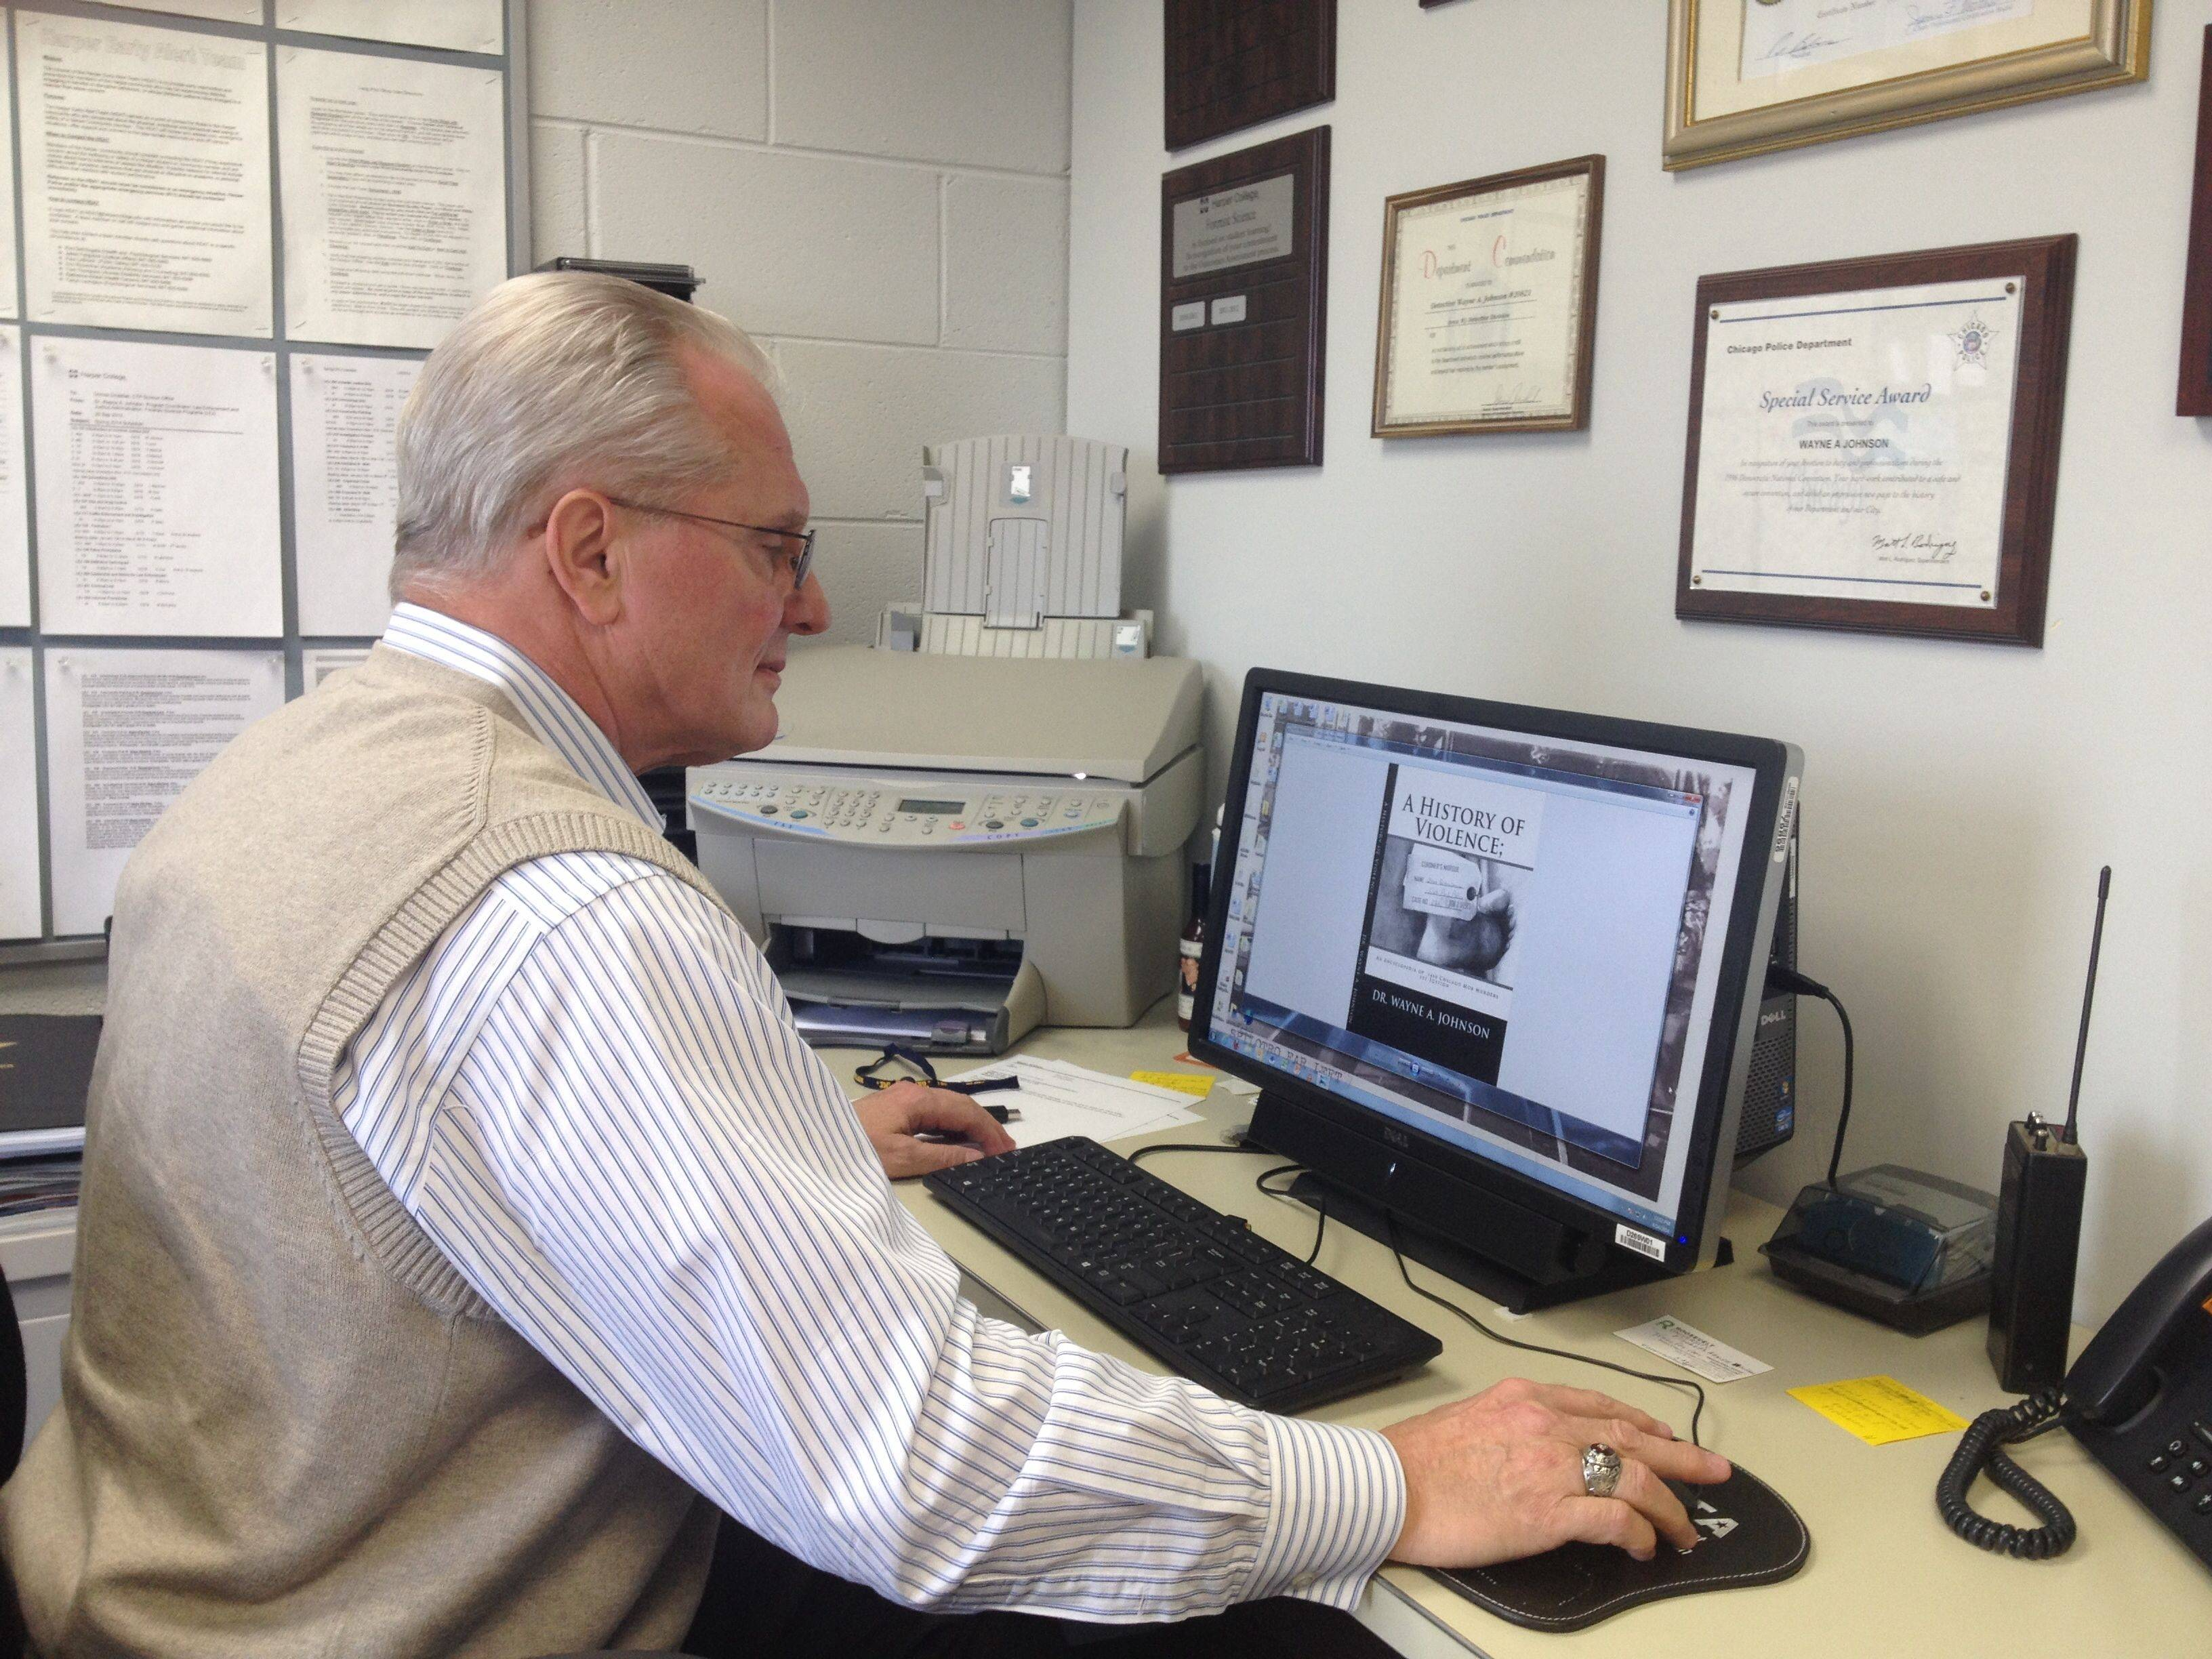 In his office at Harper College, professor Wayne A. Johnson pulls up the computer image of his new book about the mob. Johnson chronicles more than 1,400 mob murders spanning more than a century.